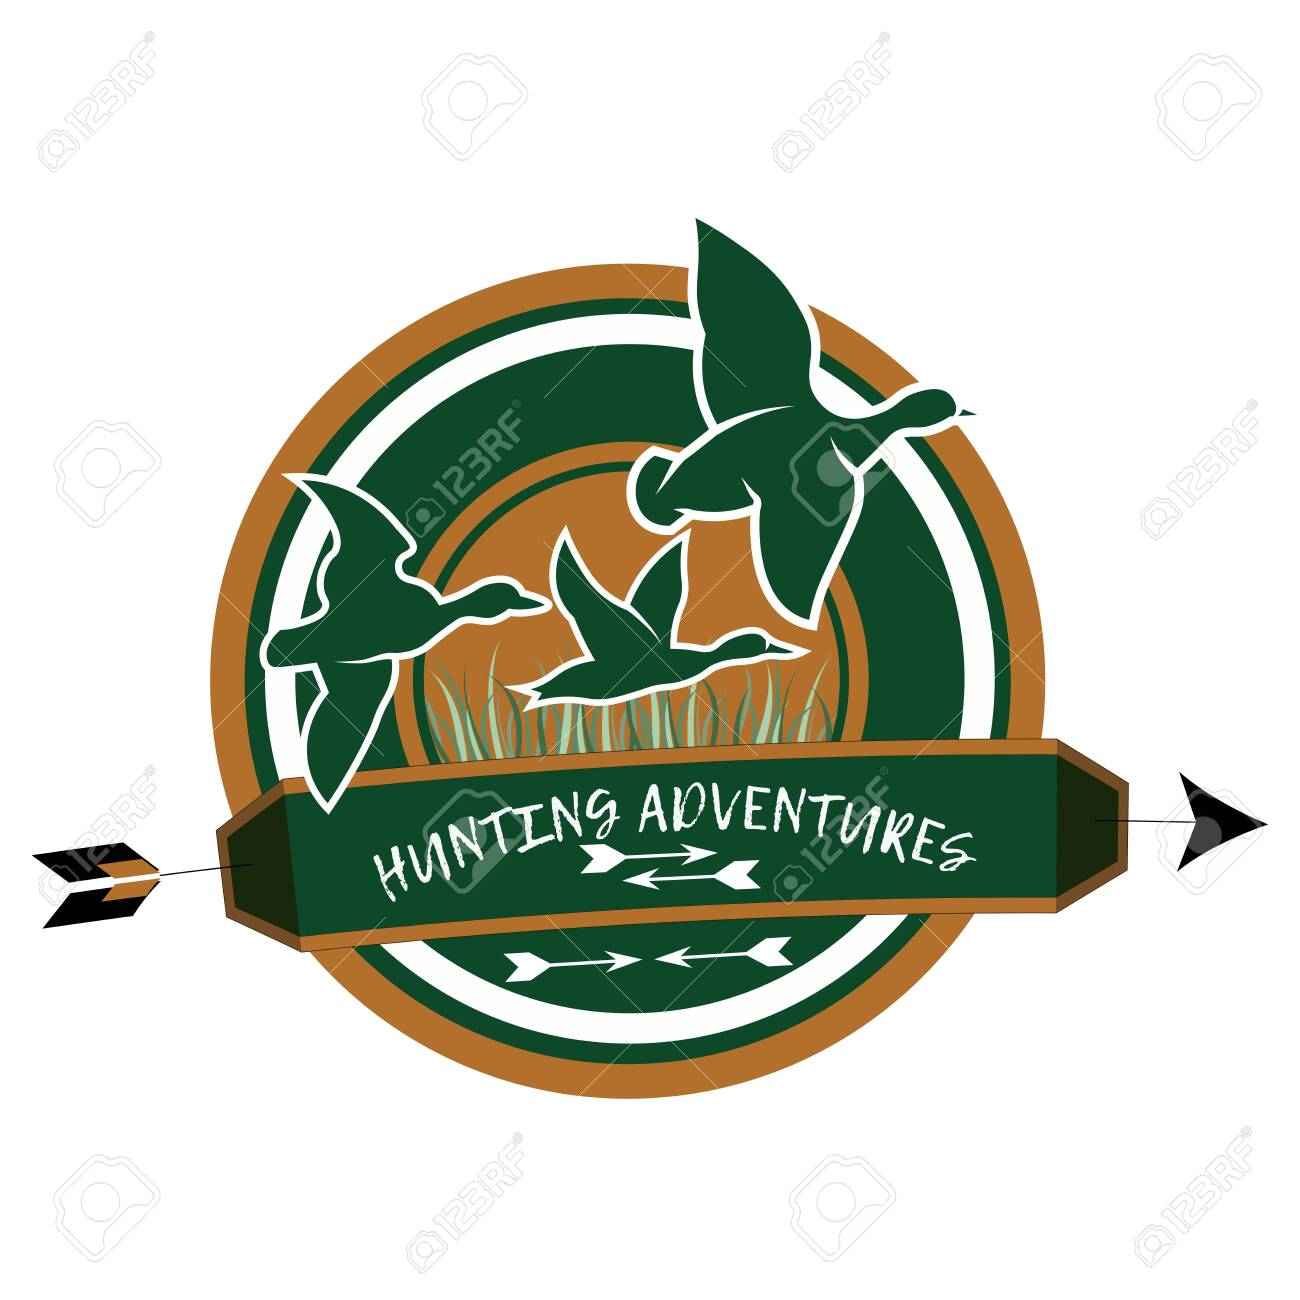 Hunting club logo on a white background - 146132391